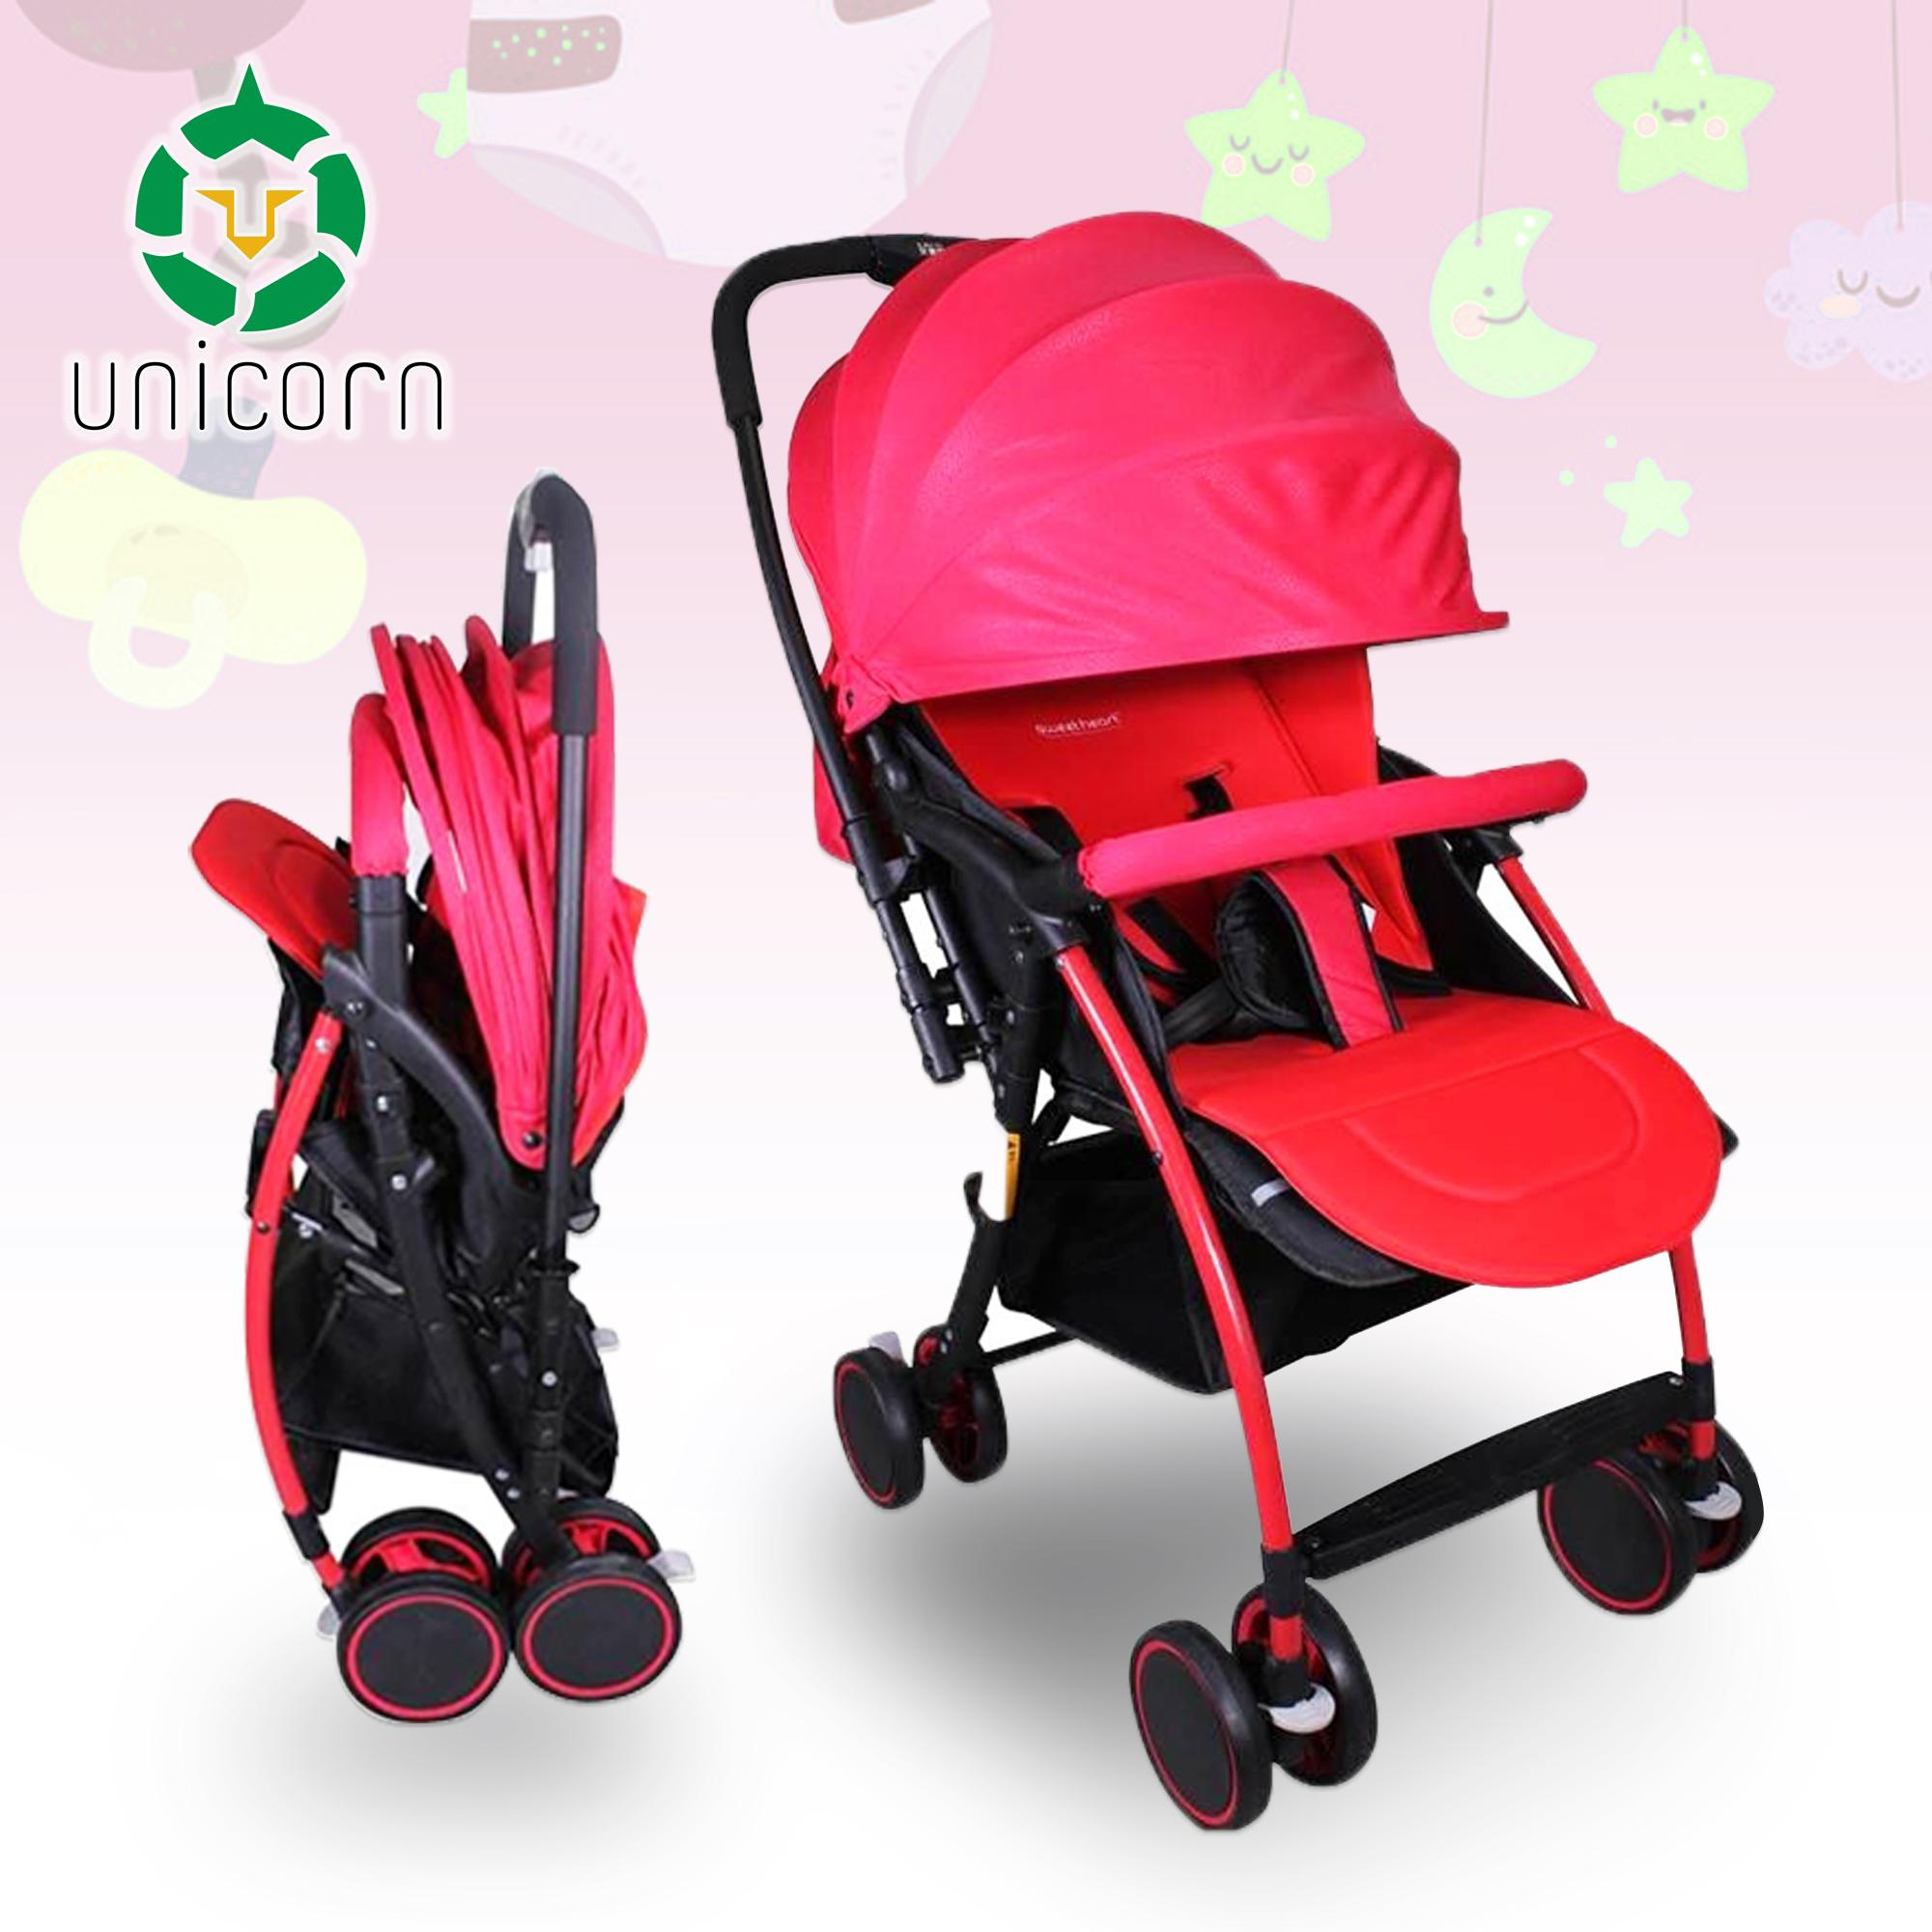 Unicorn Gab T05 Portable Folding Newborn Infant Baby Stroller Reversible Handle (red) By Unicorn Selected.